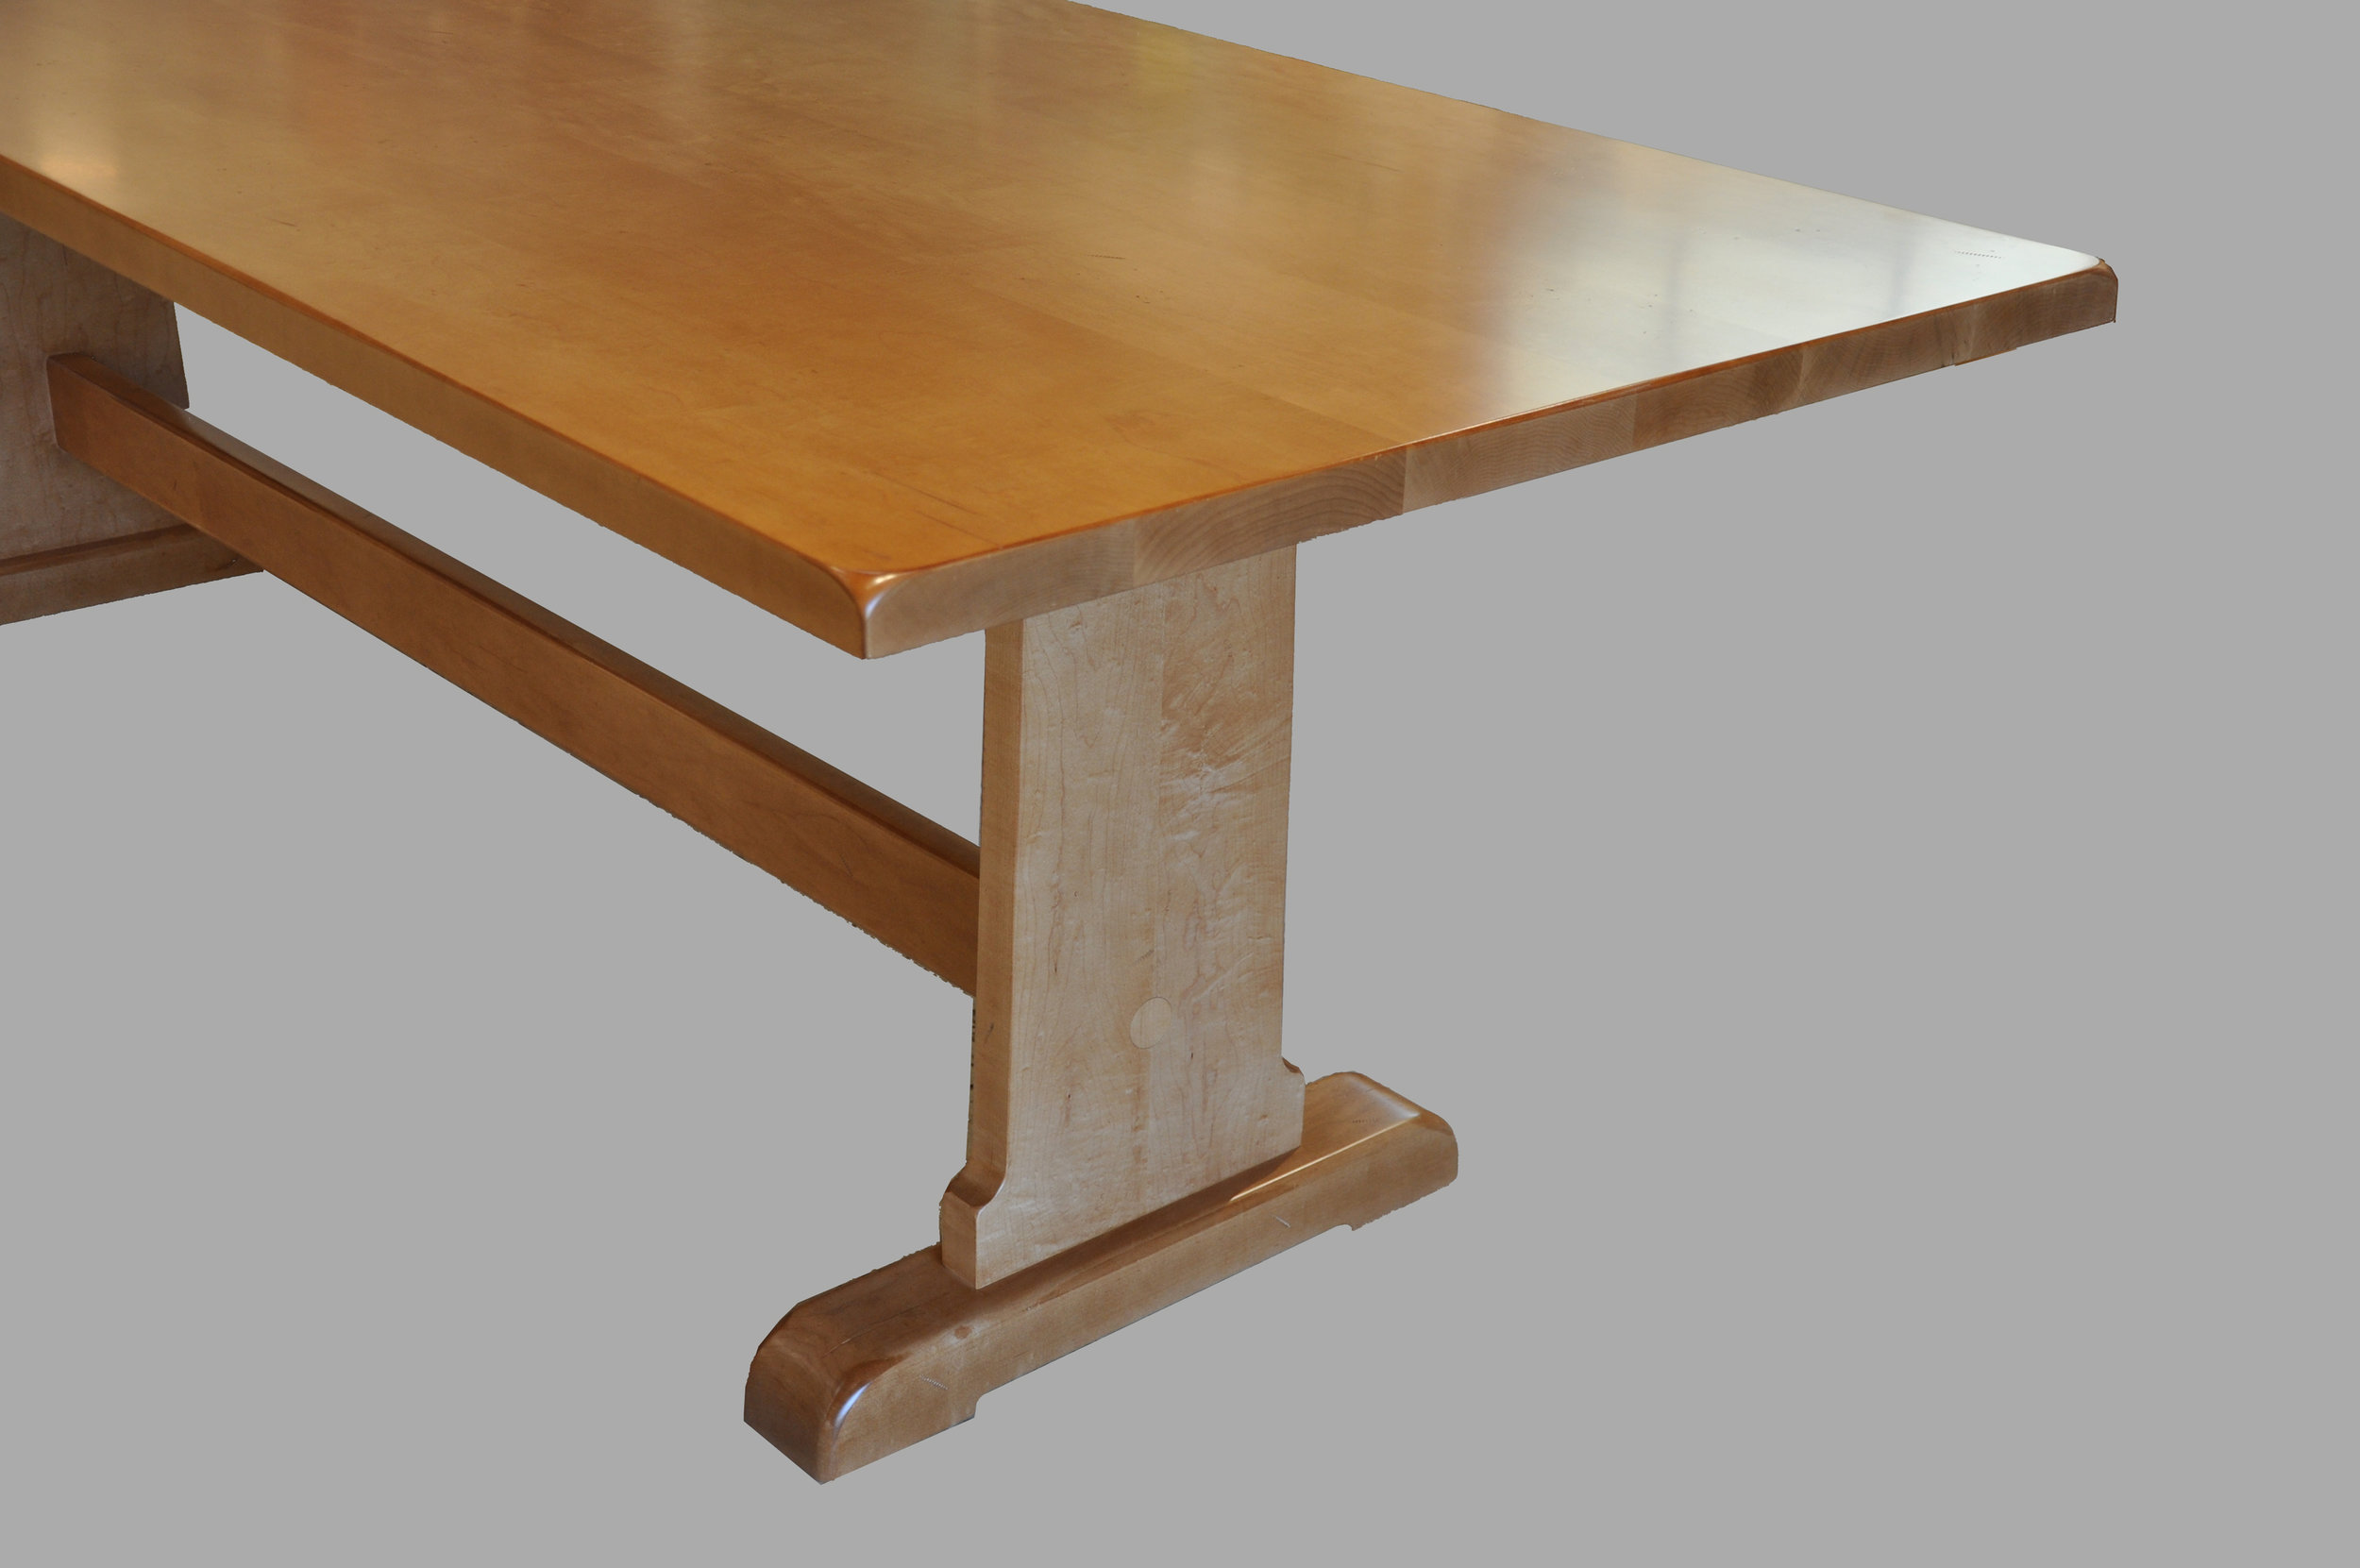 Trestle Table Base Closeup